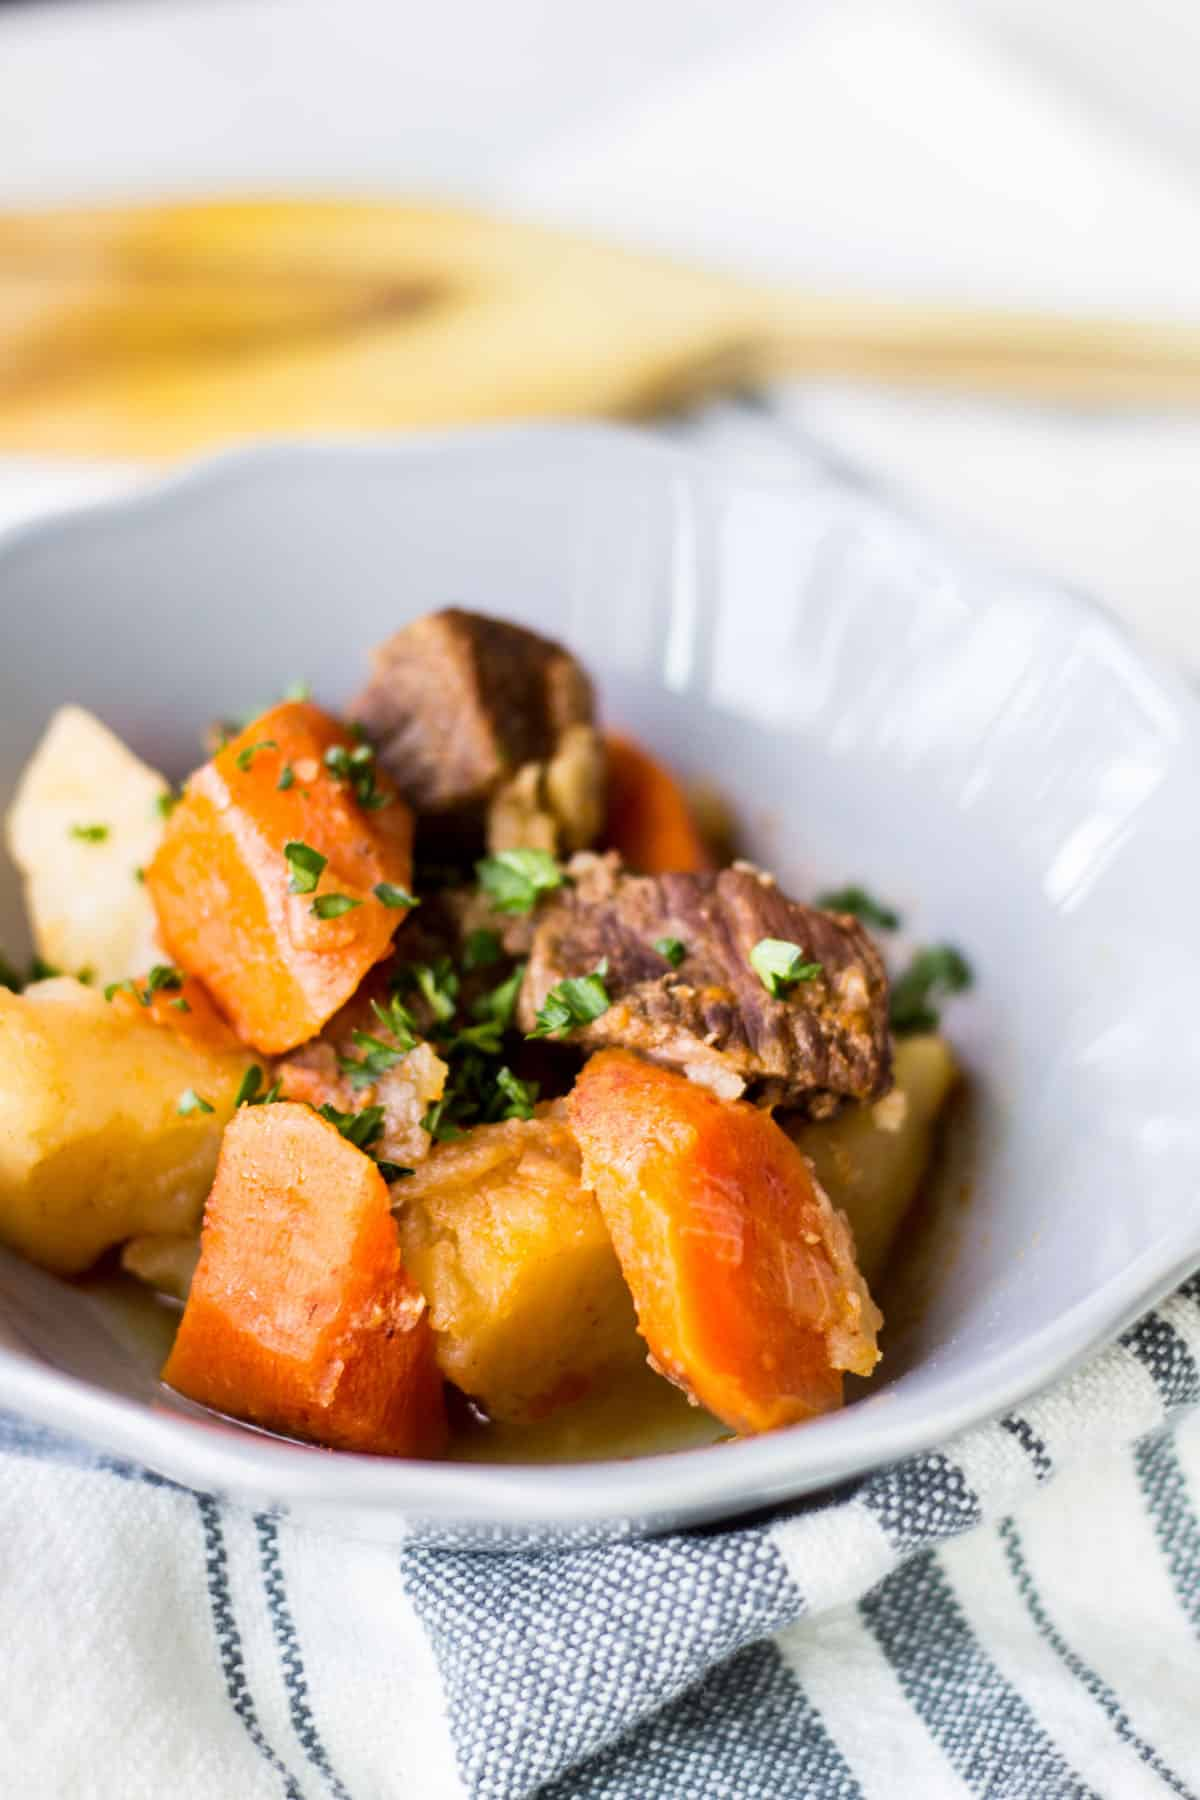 Instant Pot Beef Stew: a delicious beef stew made in the Instant Pot in half the time! A cozy, hearty meal for cold weather months. French recipe via MonPetitFour.com